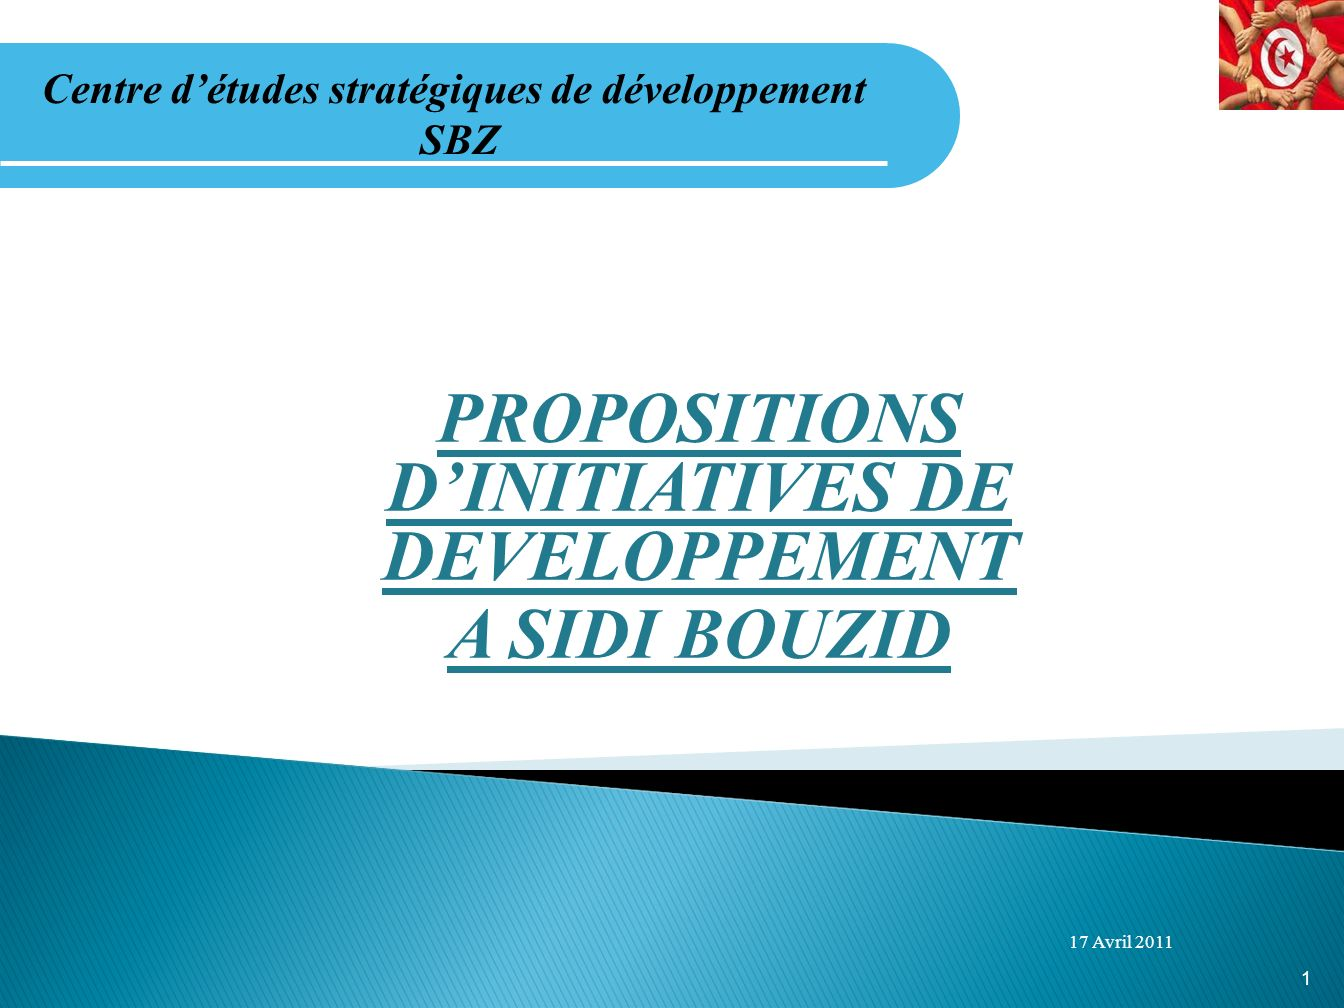 PROPOSITIONS D'INITIATIVES DE DEVELOPPEMENT A SIDI BOUZID